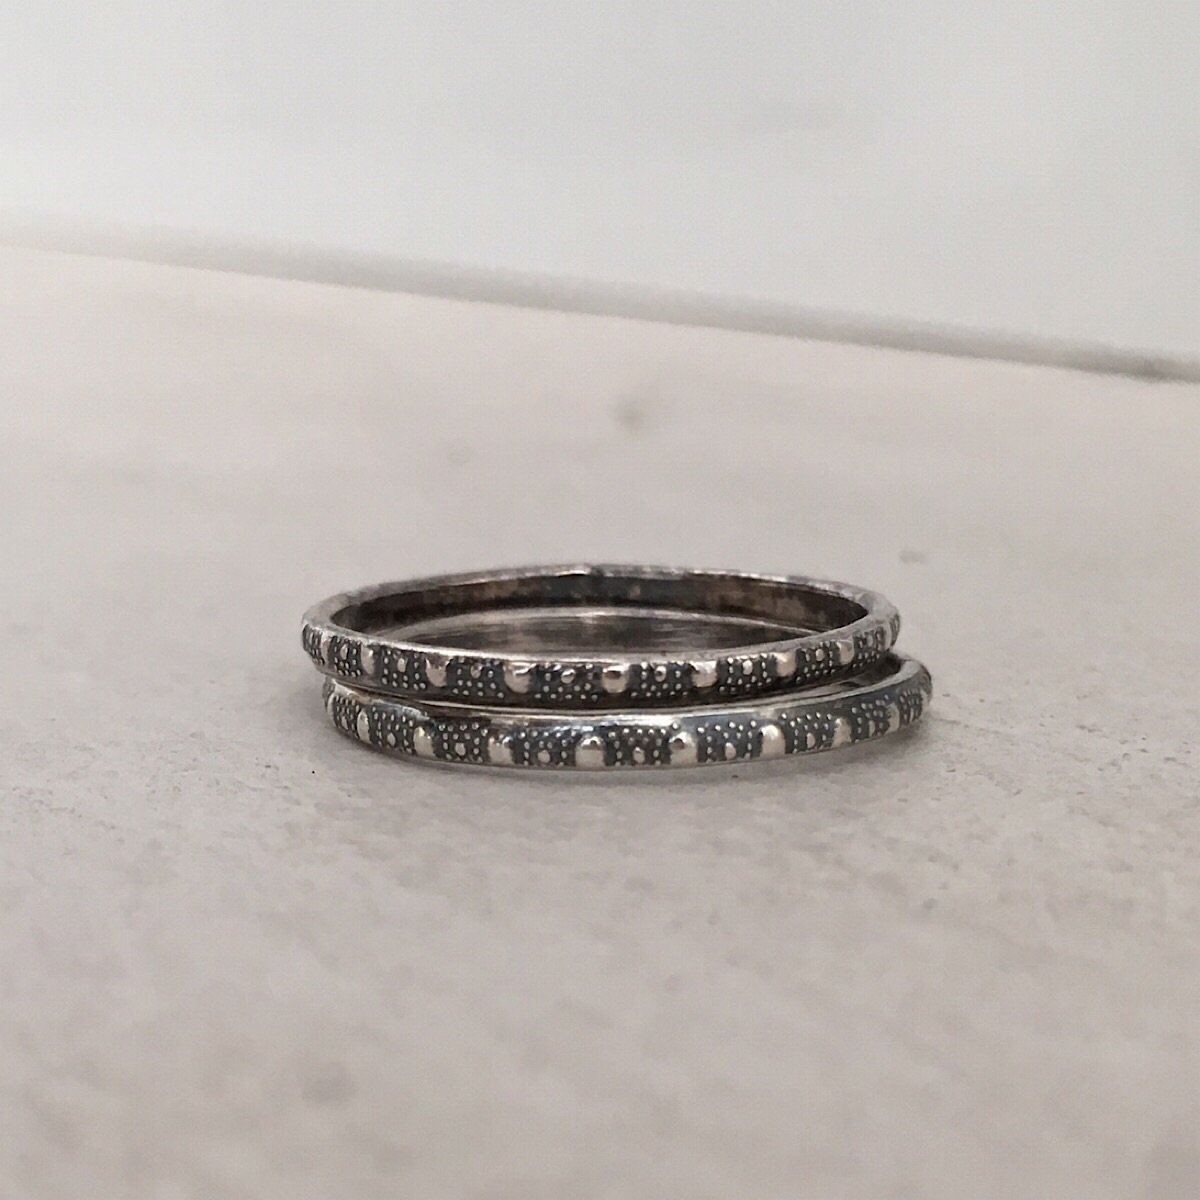 Skinny Stacker Bead Ring Silver  - IsabelleGraceJewelry